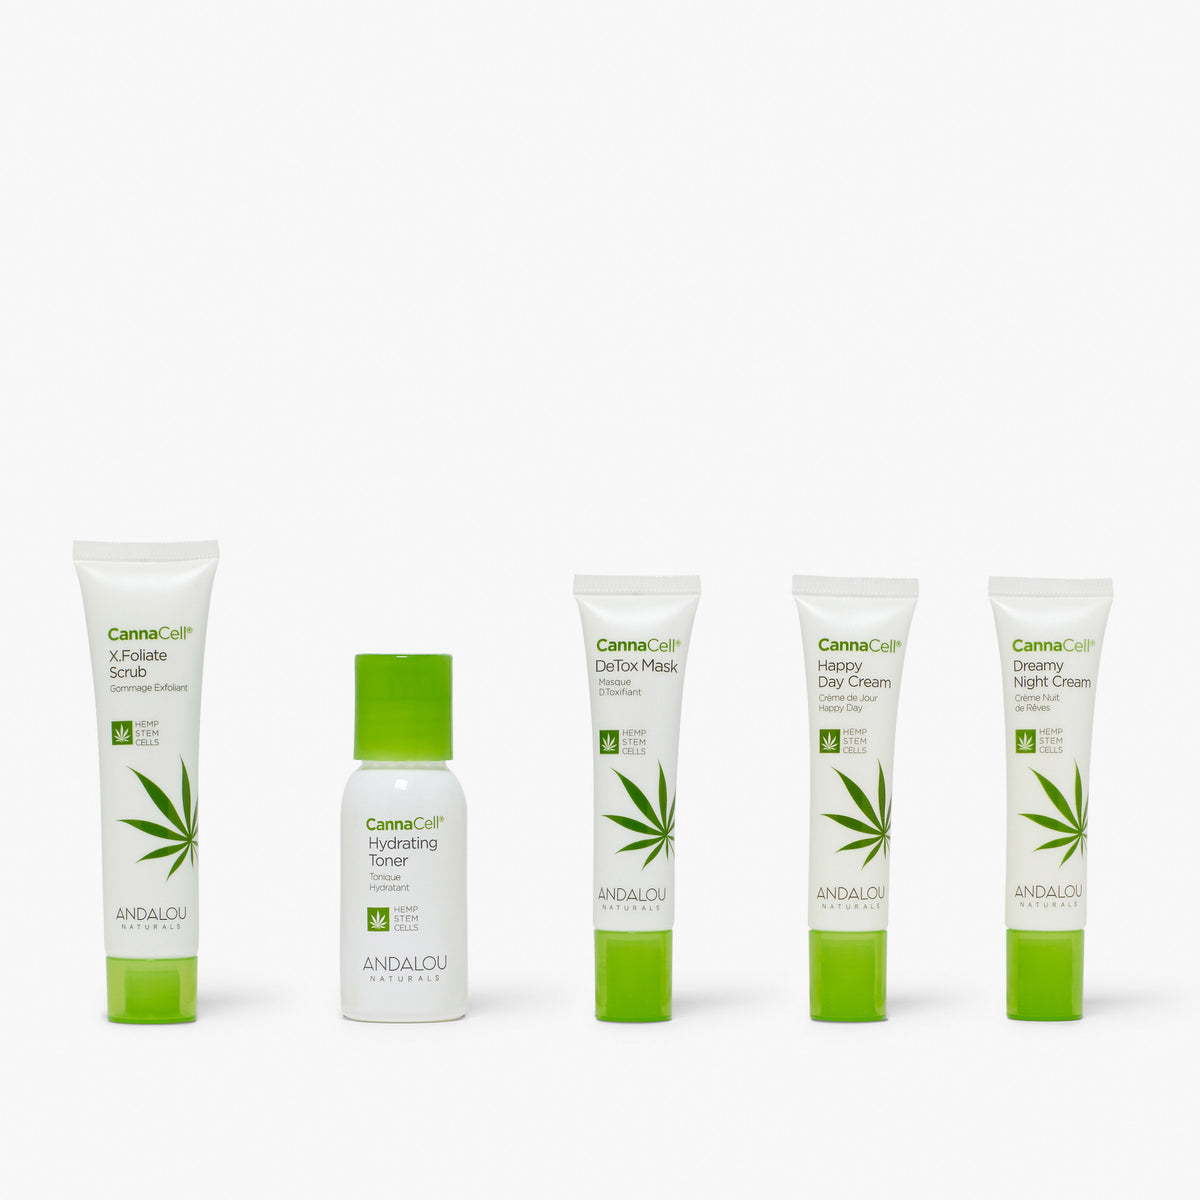 CannaCell Botanical Get Started Kit - Andalou Naturals US